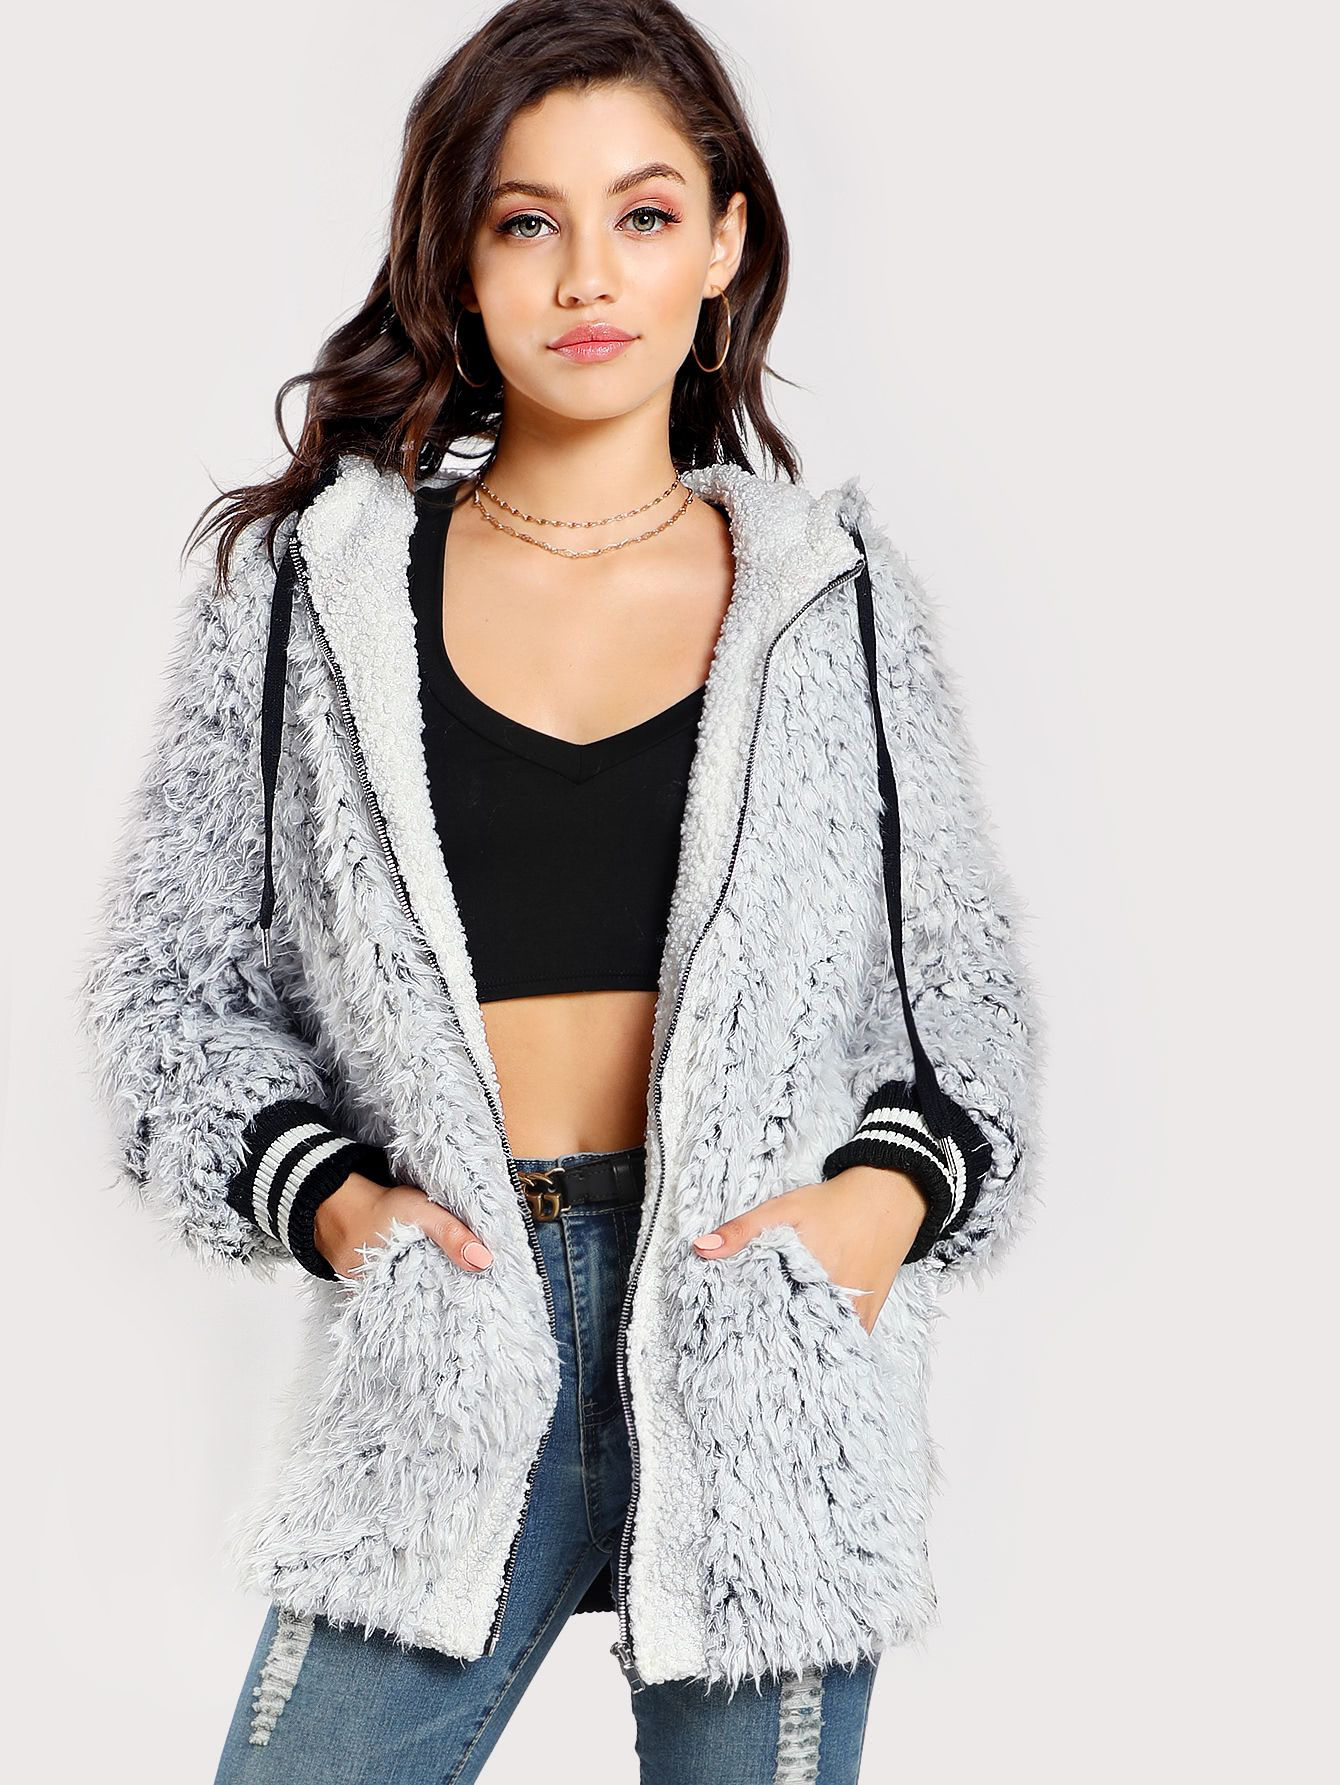 e6cbe0ac9 Shop Striped Trim Faux Fur Hoodie Jacket online. SheIn offers Striped Trim Faux  Fur Hoodie Jacket & more to fit your fashionable needs.